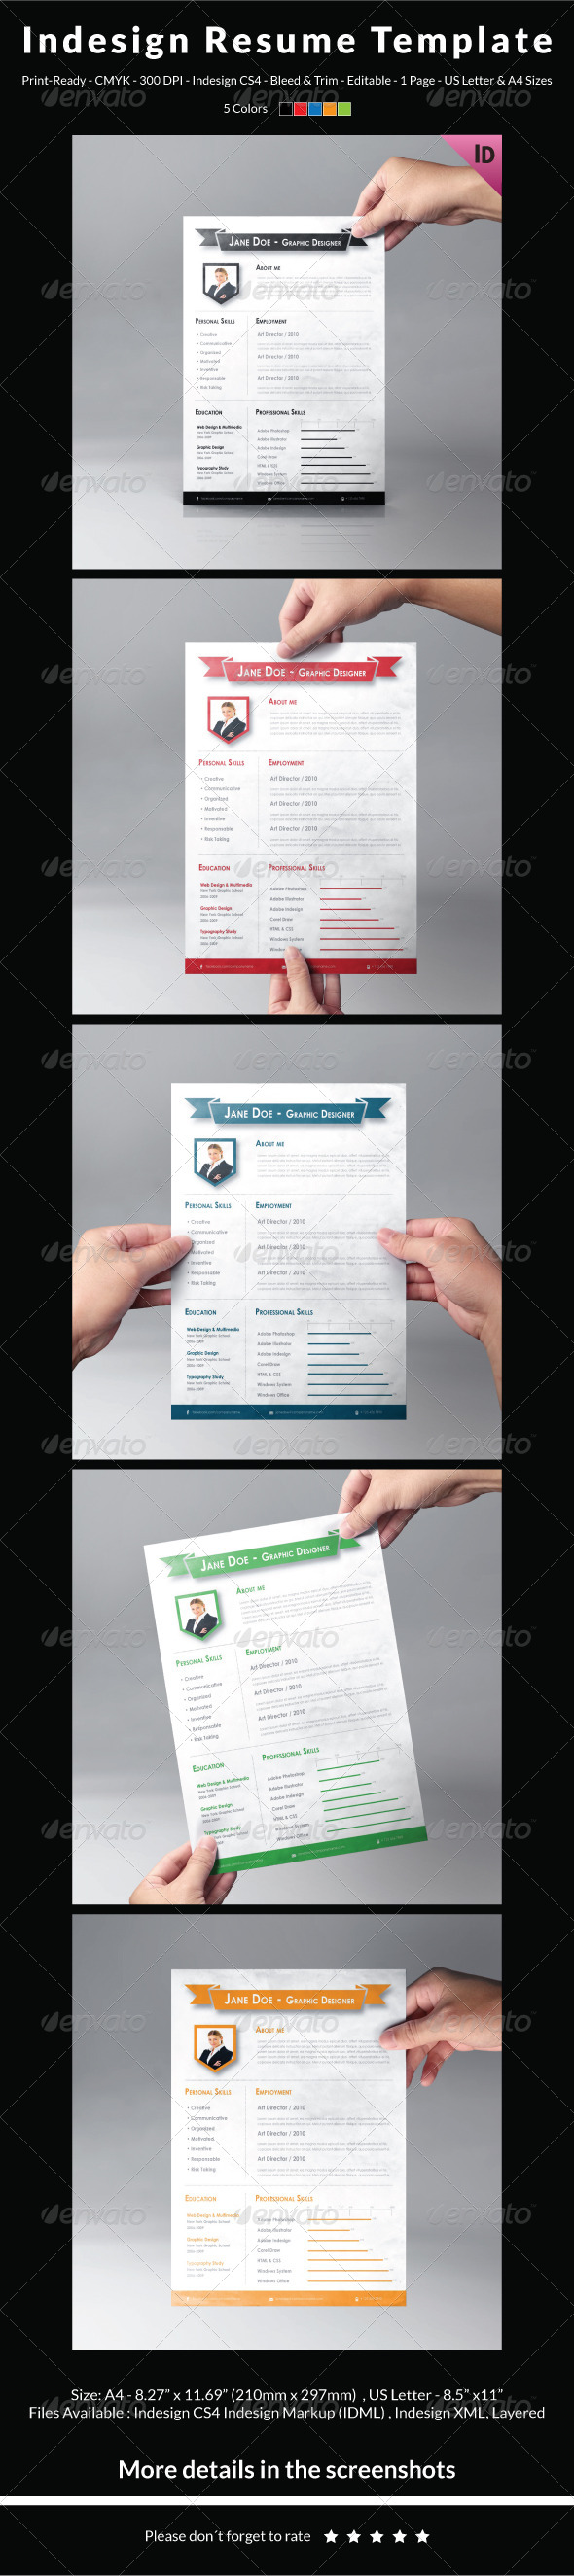 indesign resume template graphicriver